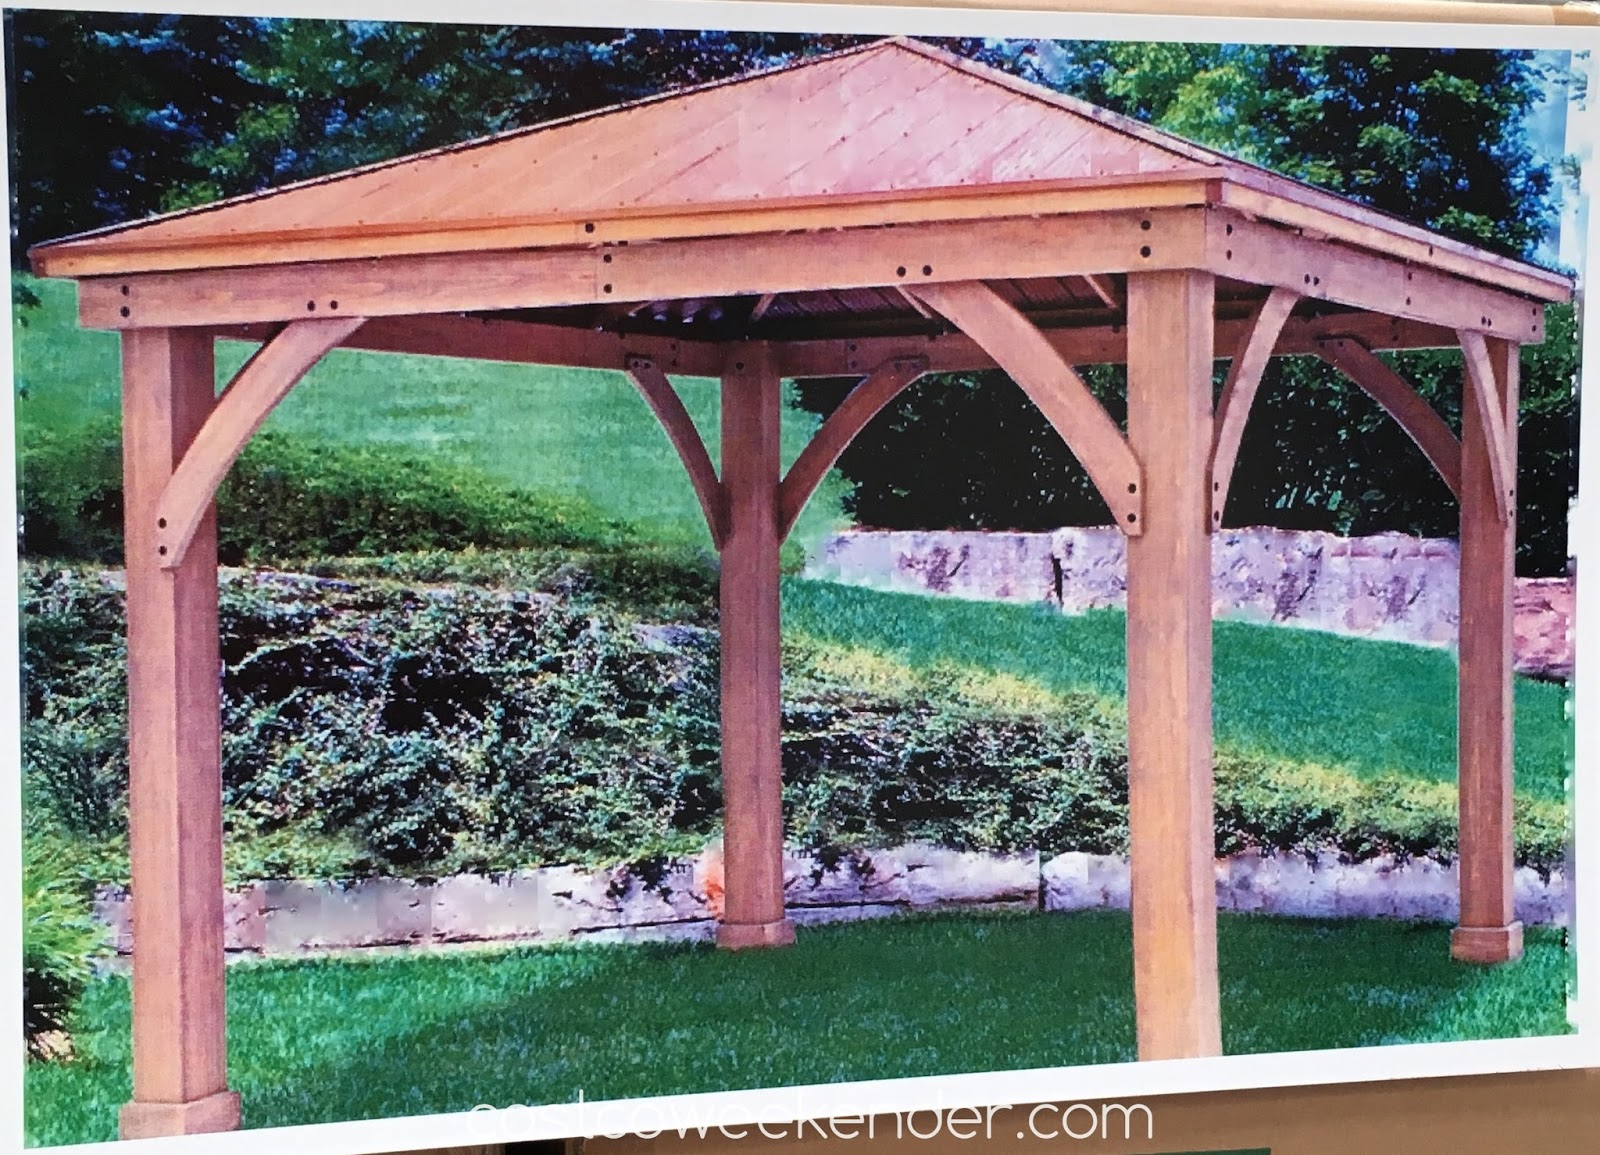 Yardistry Wood Gazebo With Aluminum Roof Ideal Way To Create An Intimate Outdoor Living E